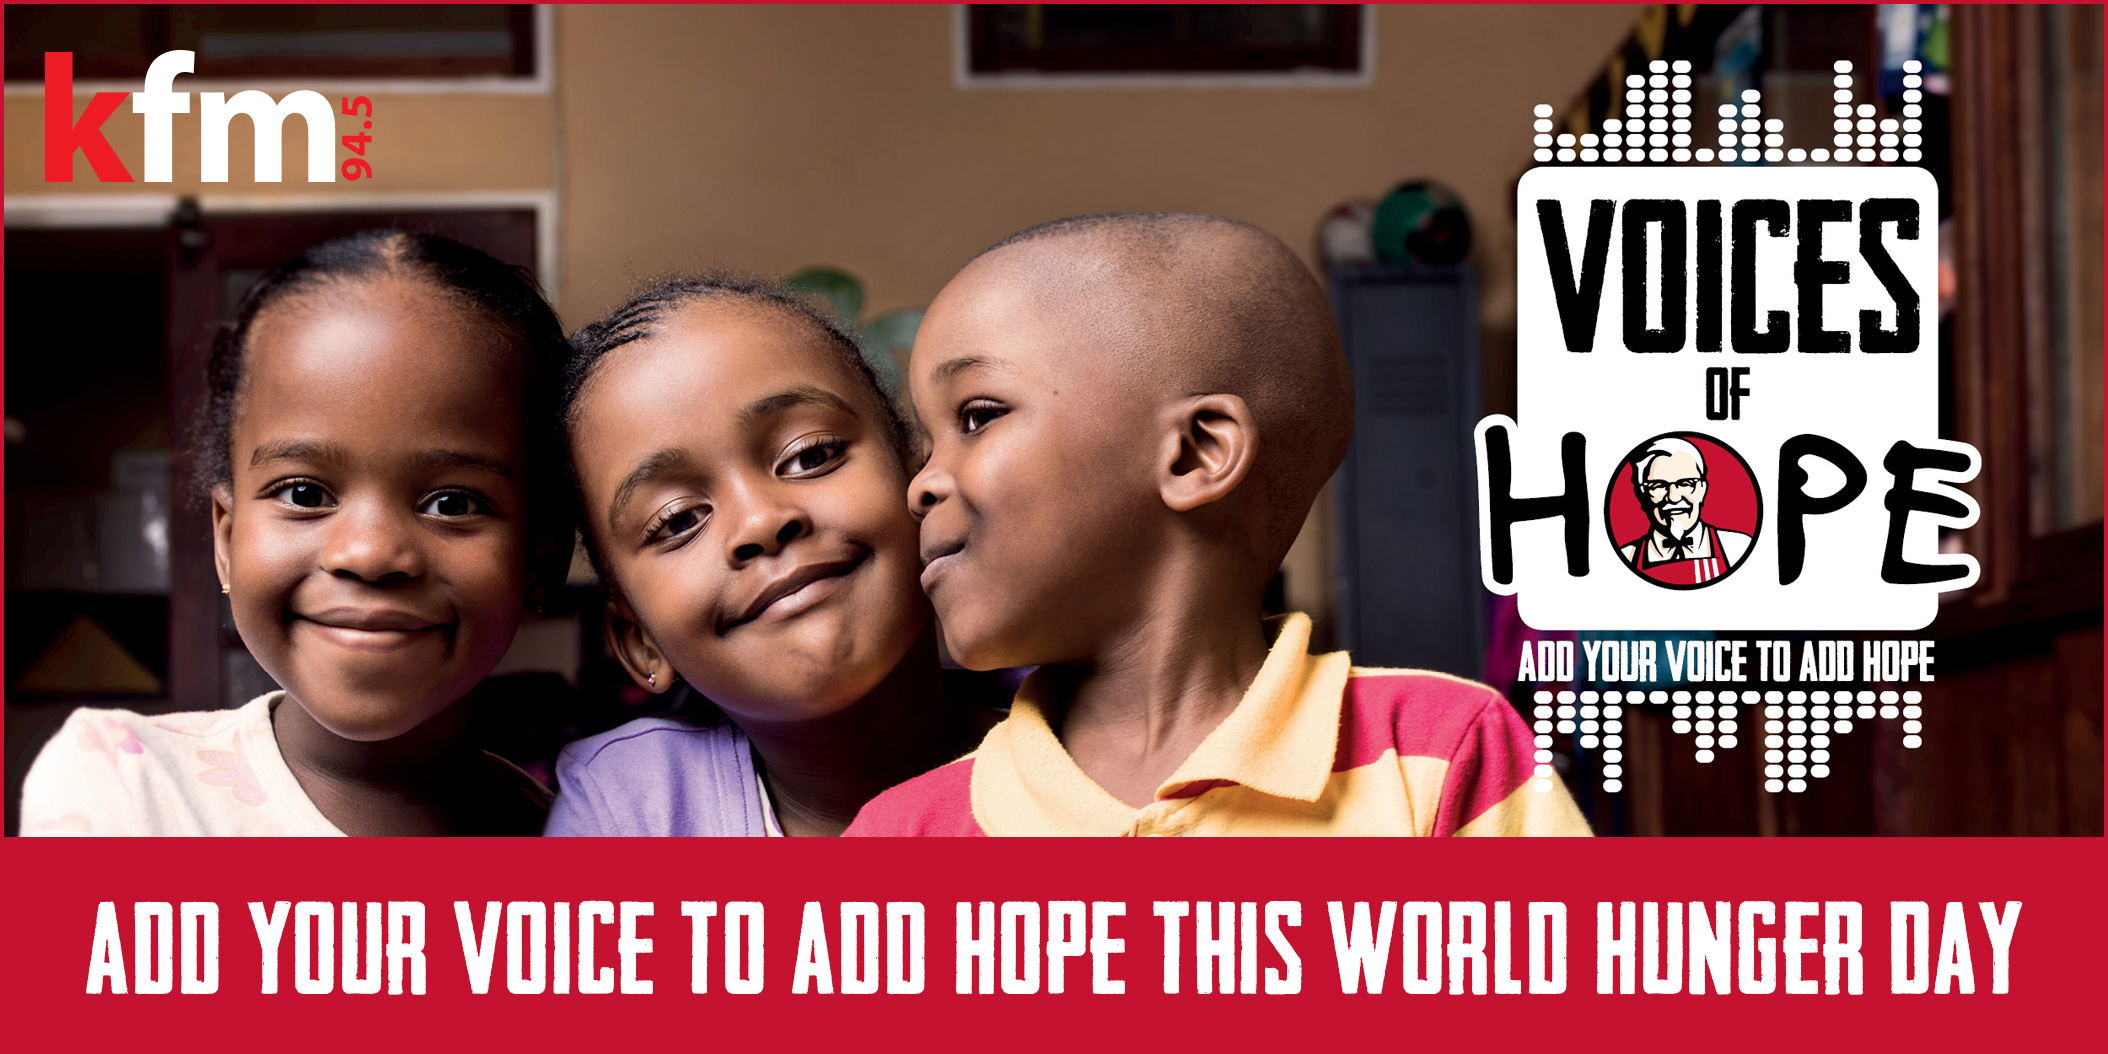 KFC's Voices of Hope